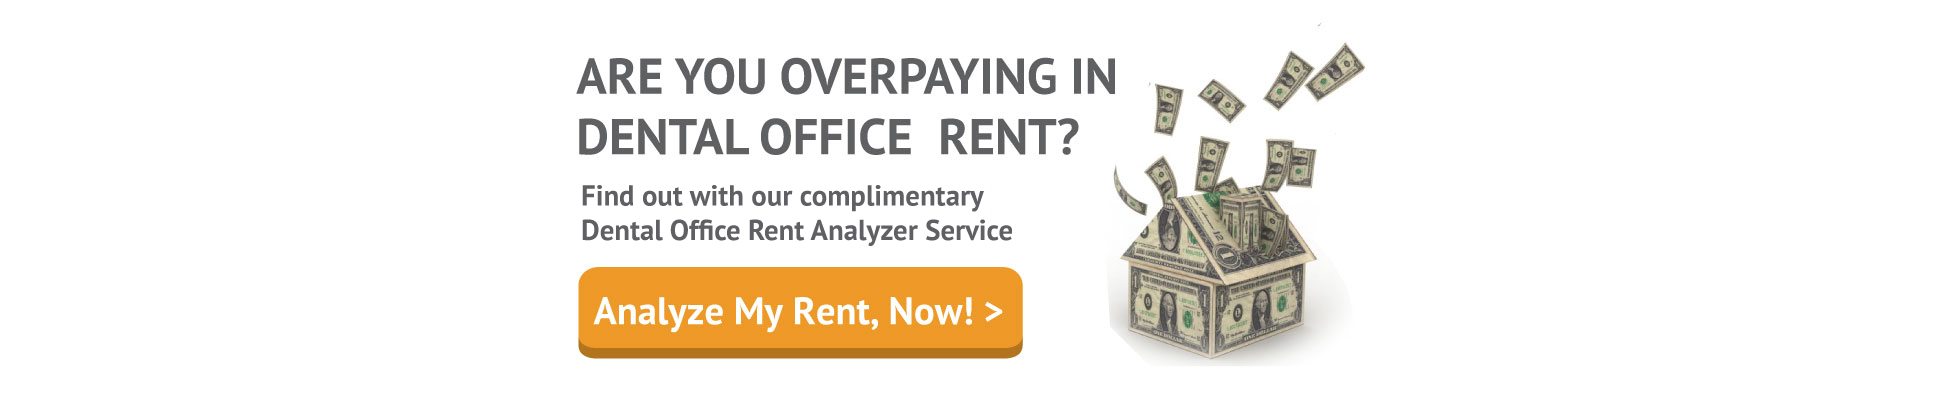 Homepage-Analyze-my-rent-services